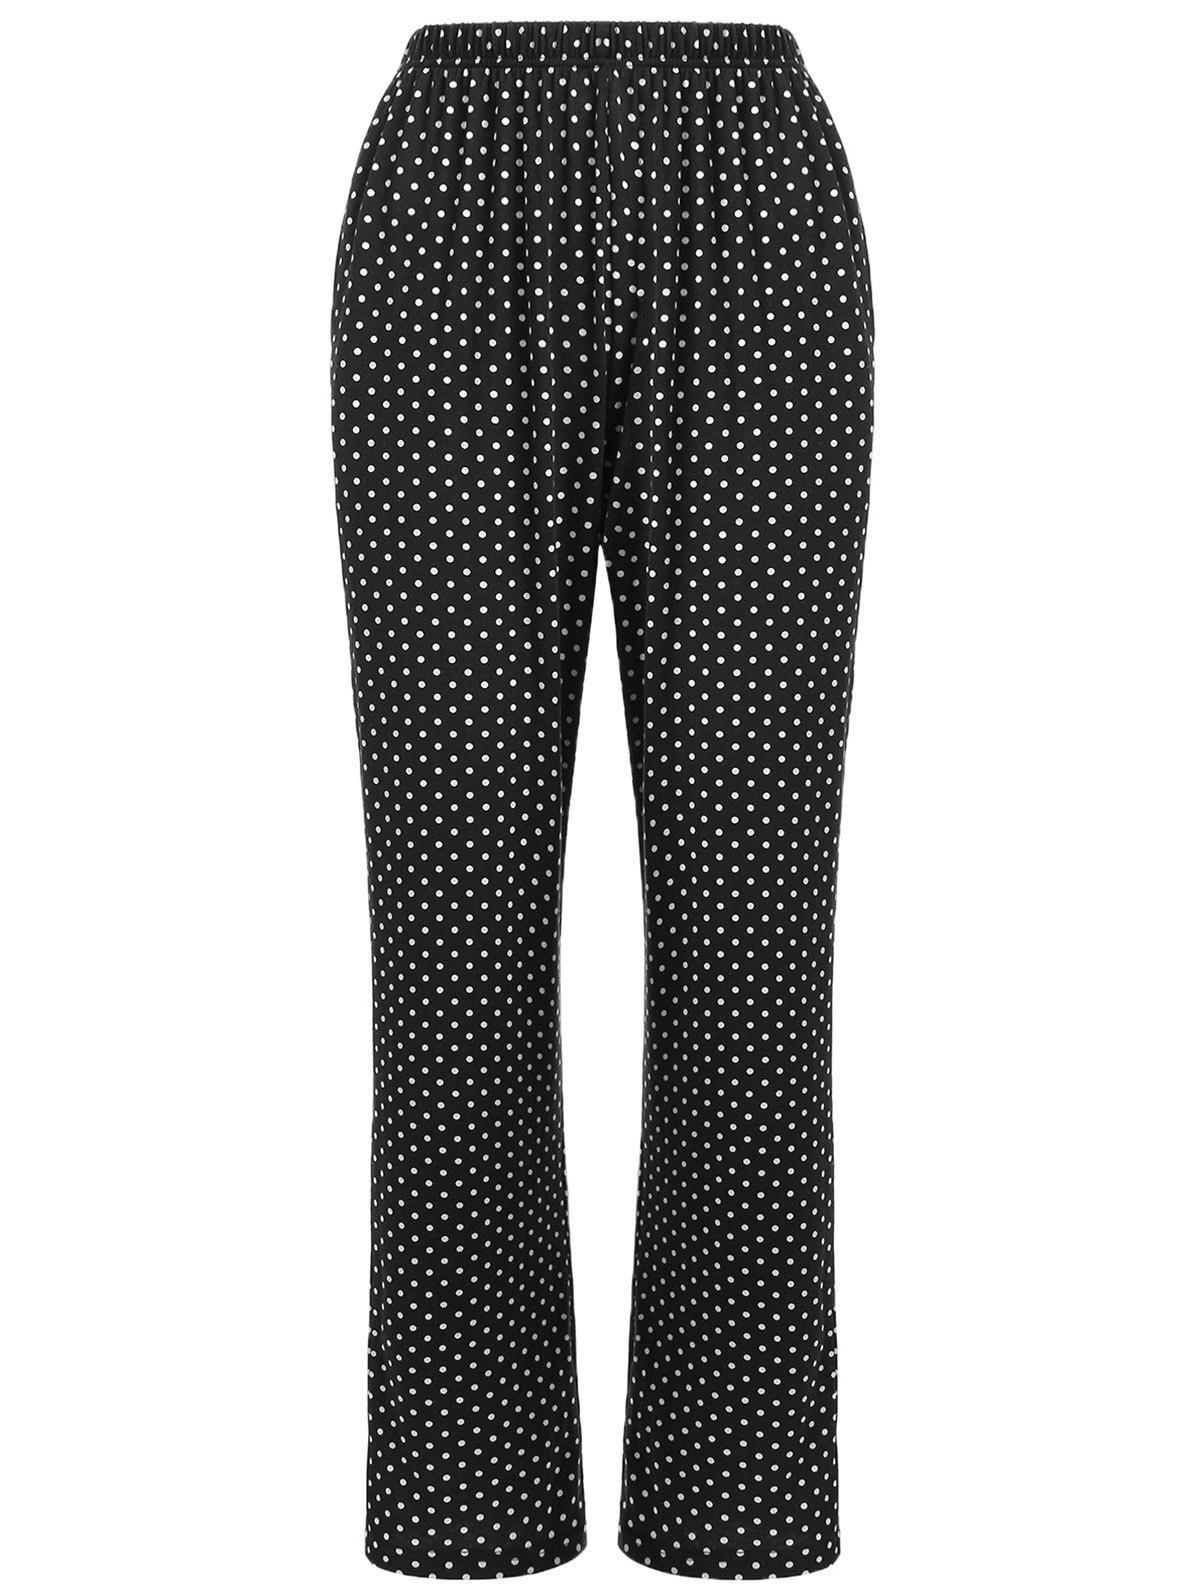 Shops Sleepwear Polka Dot Print Pants